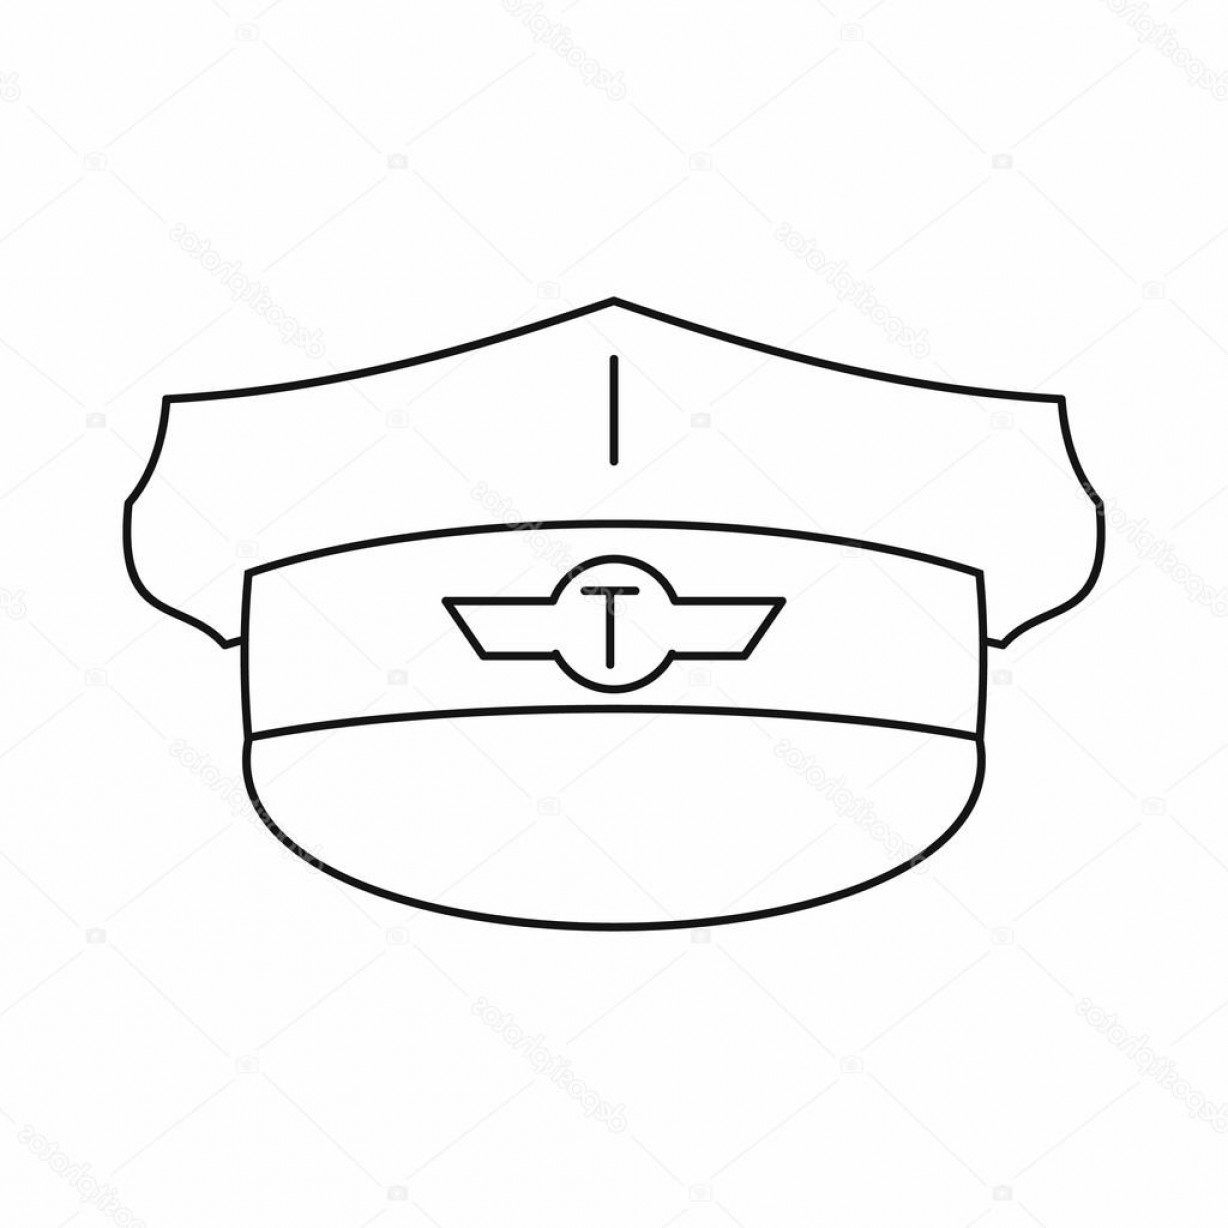 Chauffer Driver Cap Vector: Stock Illustration Cap Taxi Driver Icon Outline